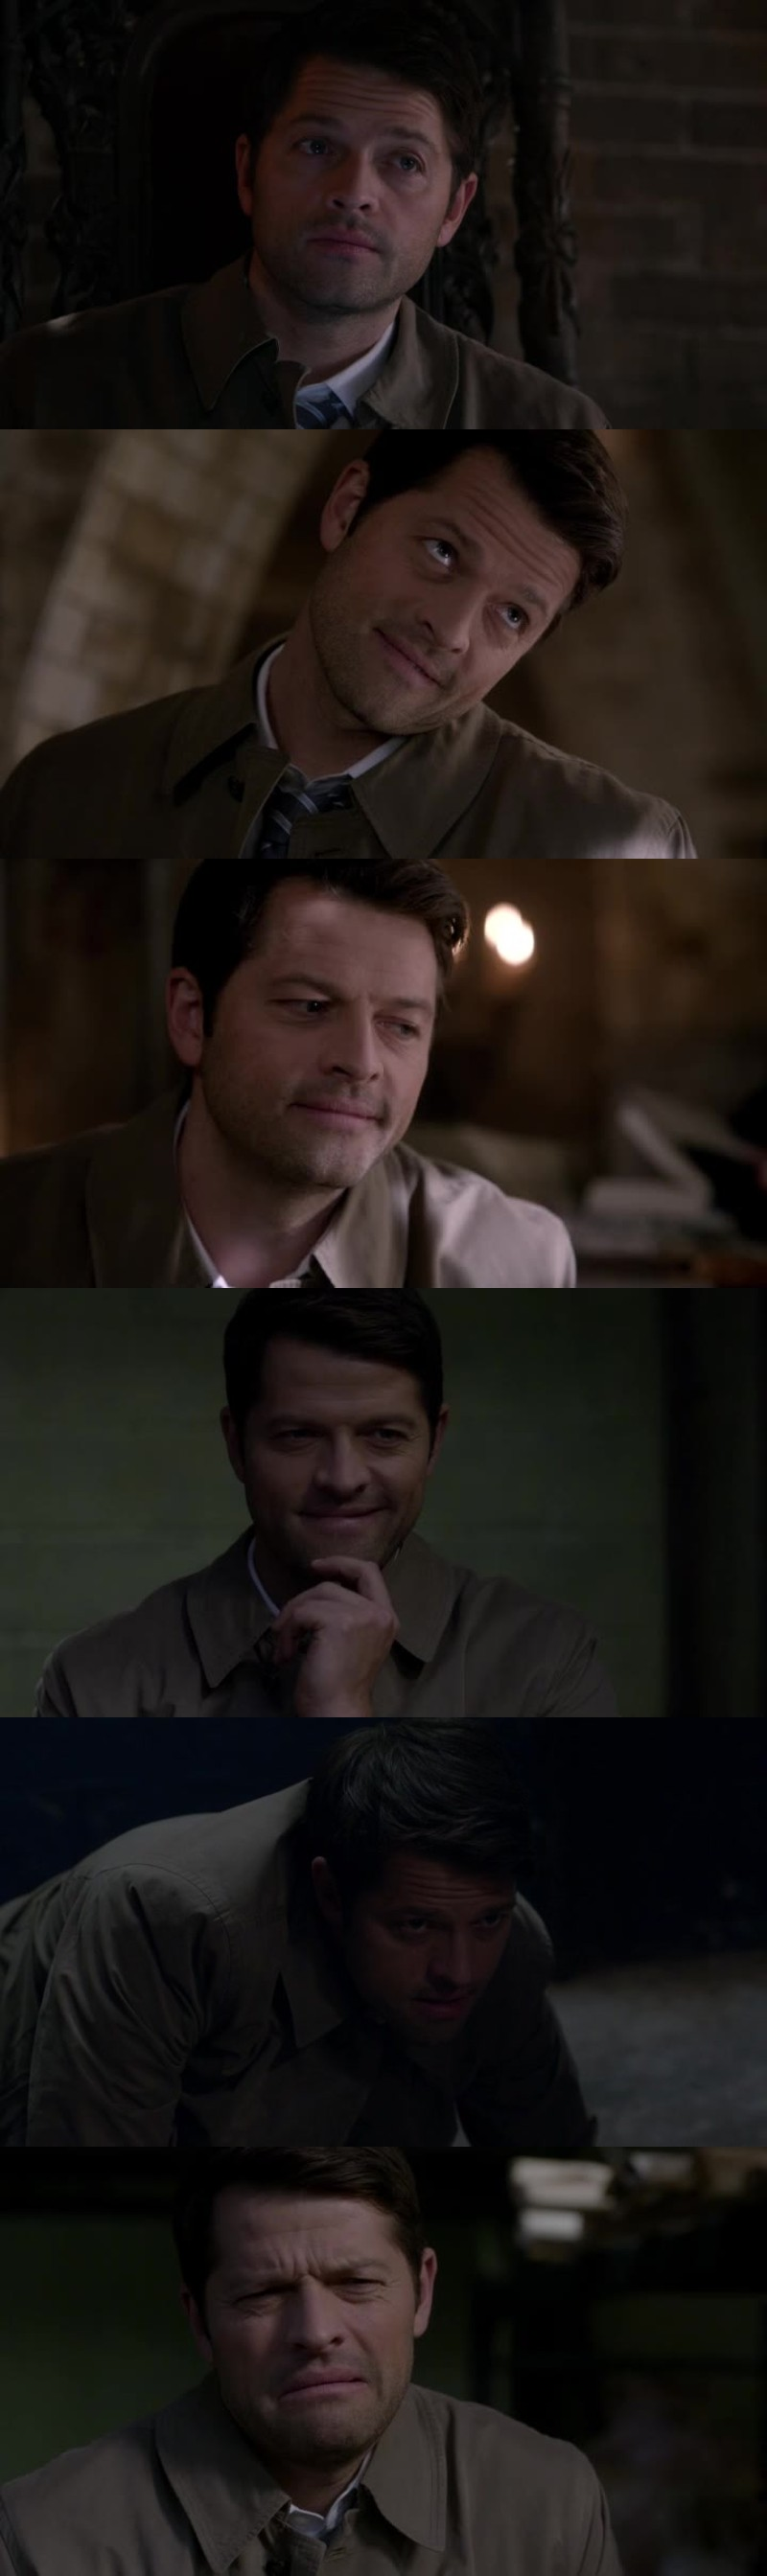 Misha was amazing in this episode